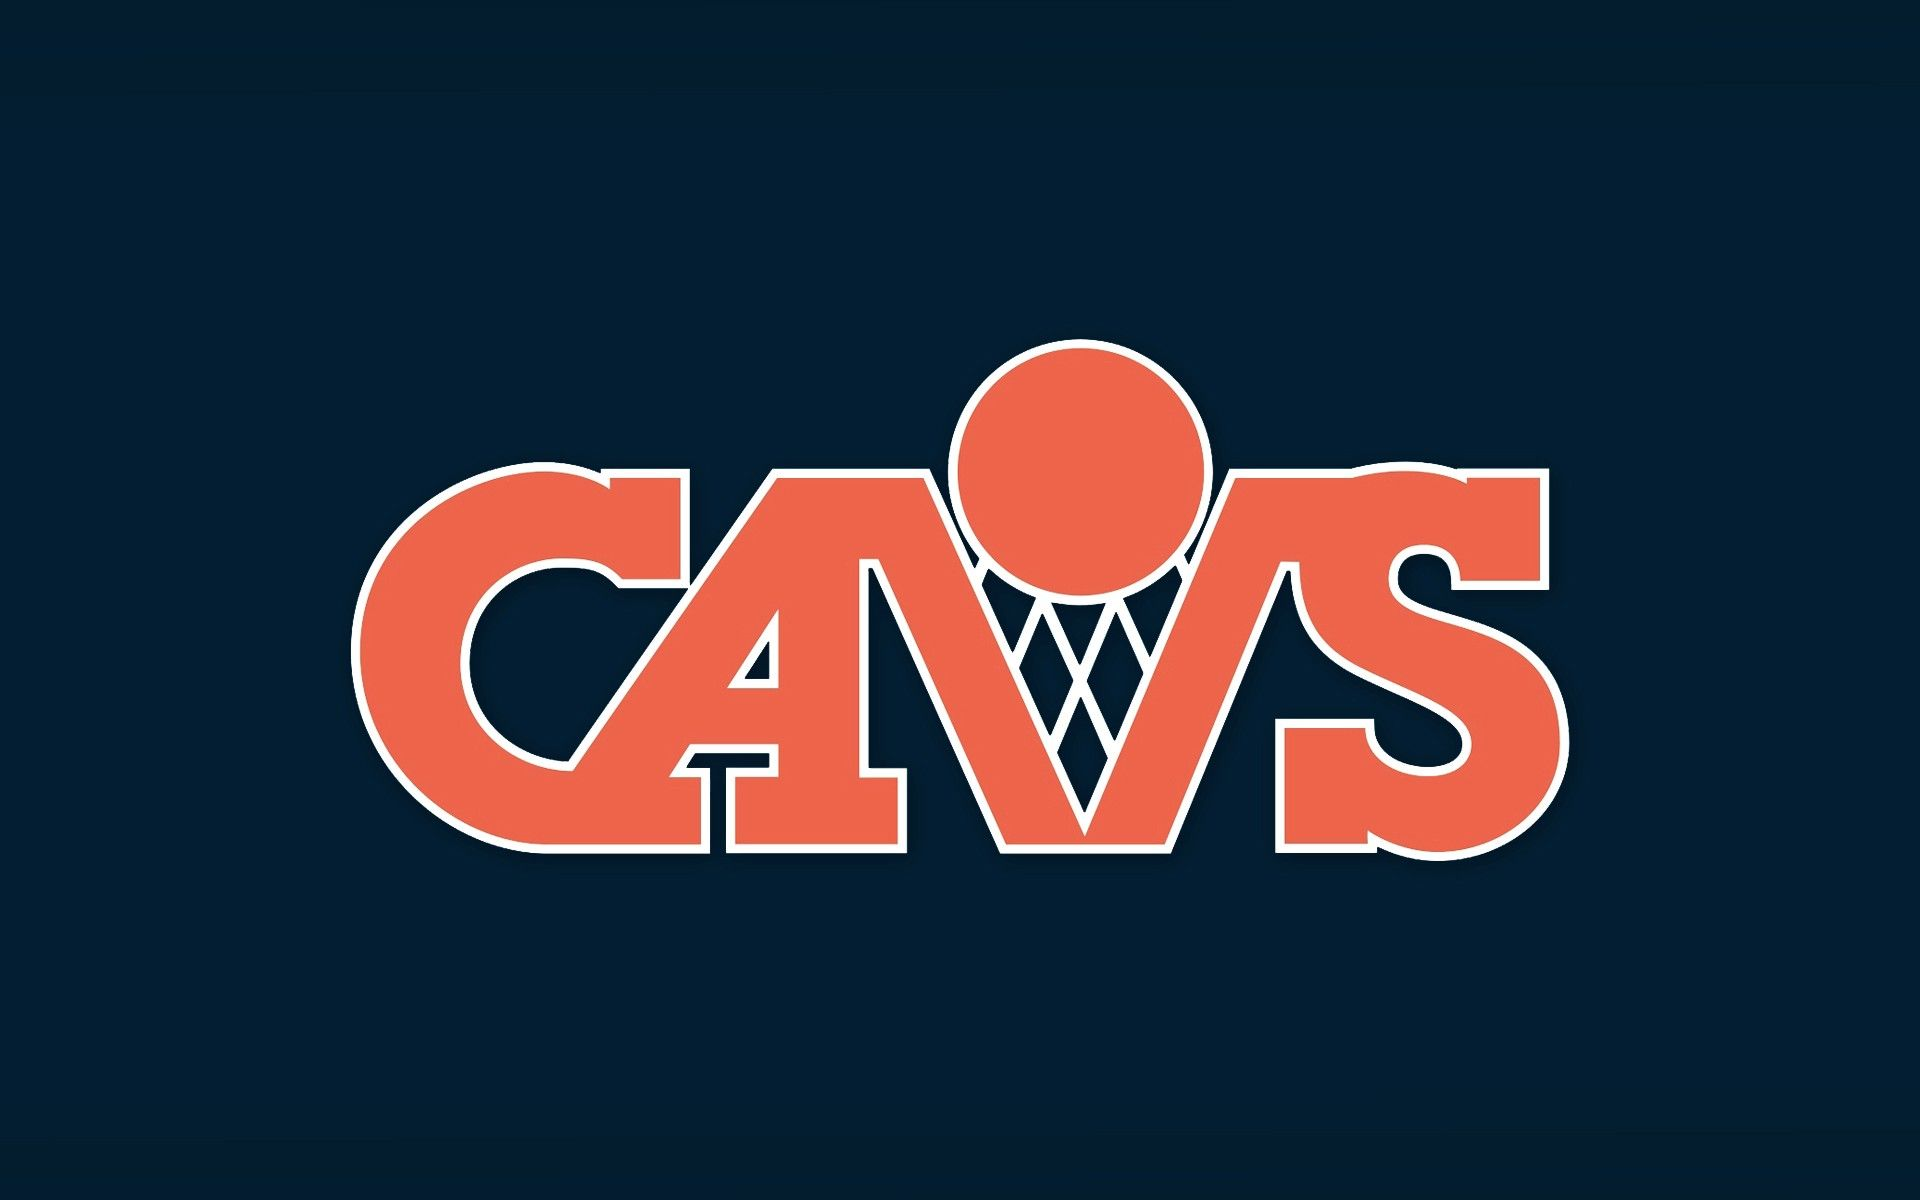 Images Of The Cleveland Cavaliers Logos Old Cleveland Cavaliers Logo Wallpapers Logos Basketball Cleveland Cavaliers Logo